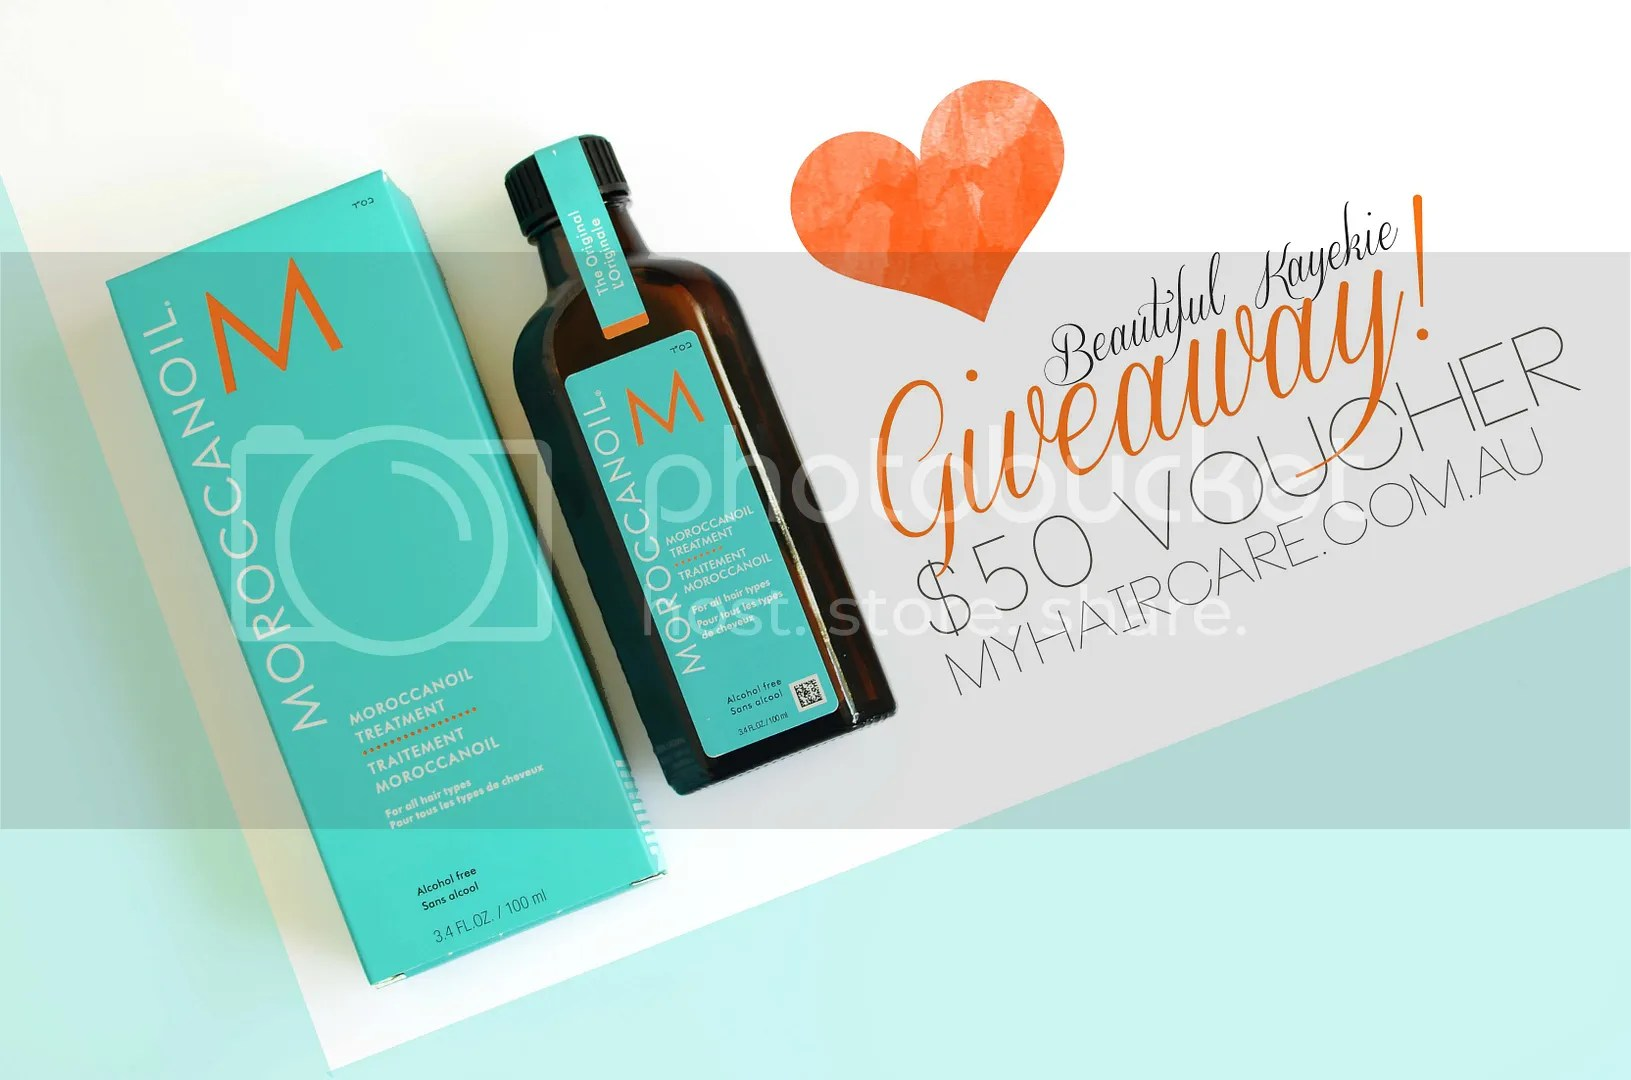 My Haircare Giveaway - $50 voucher!